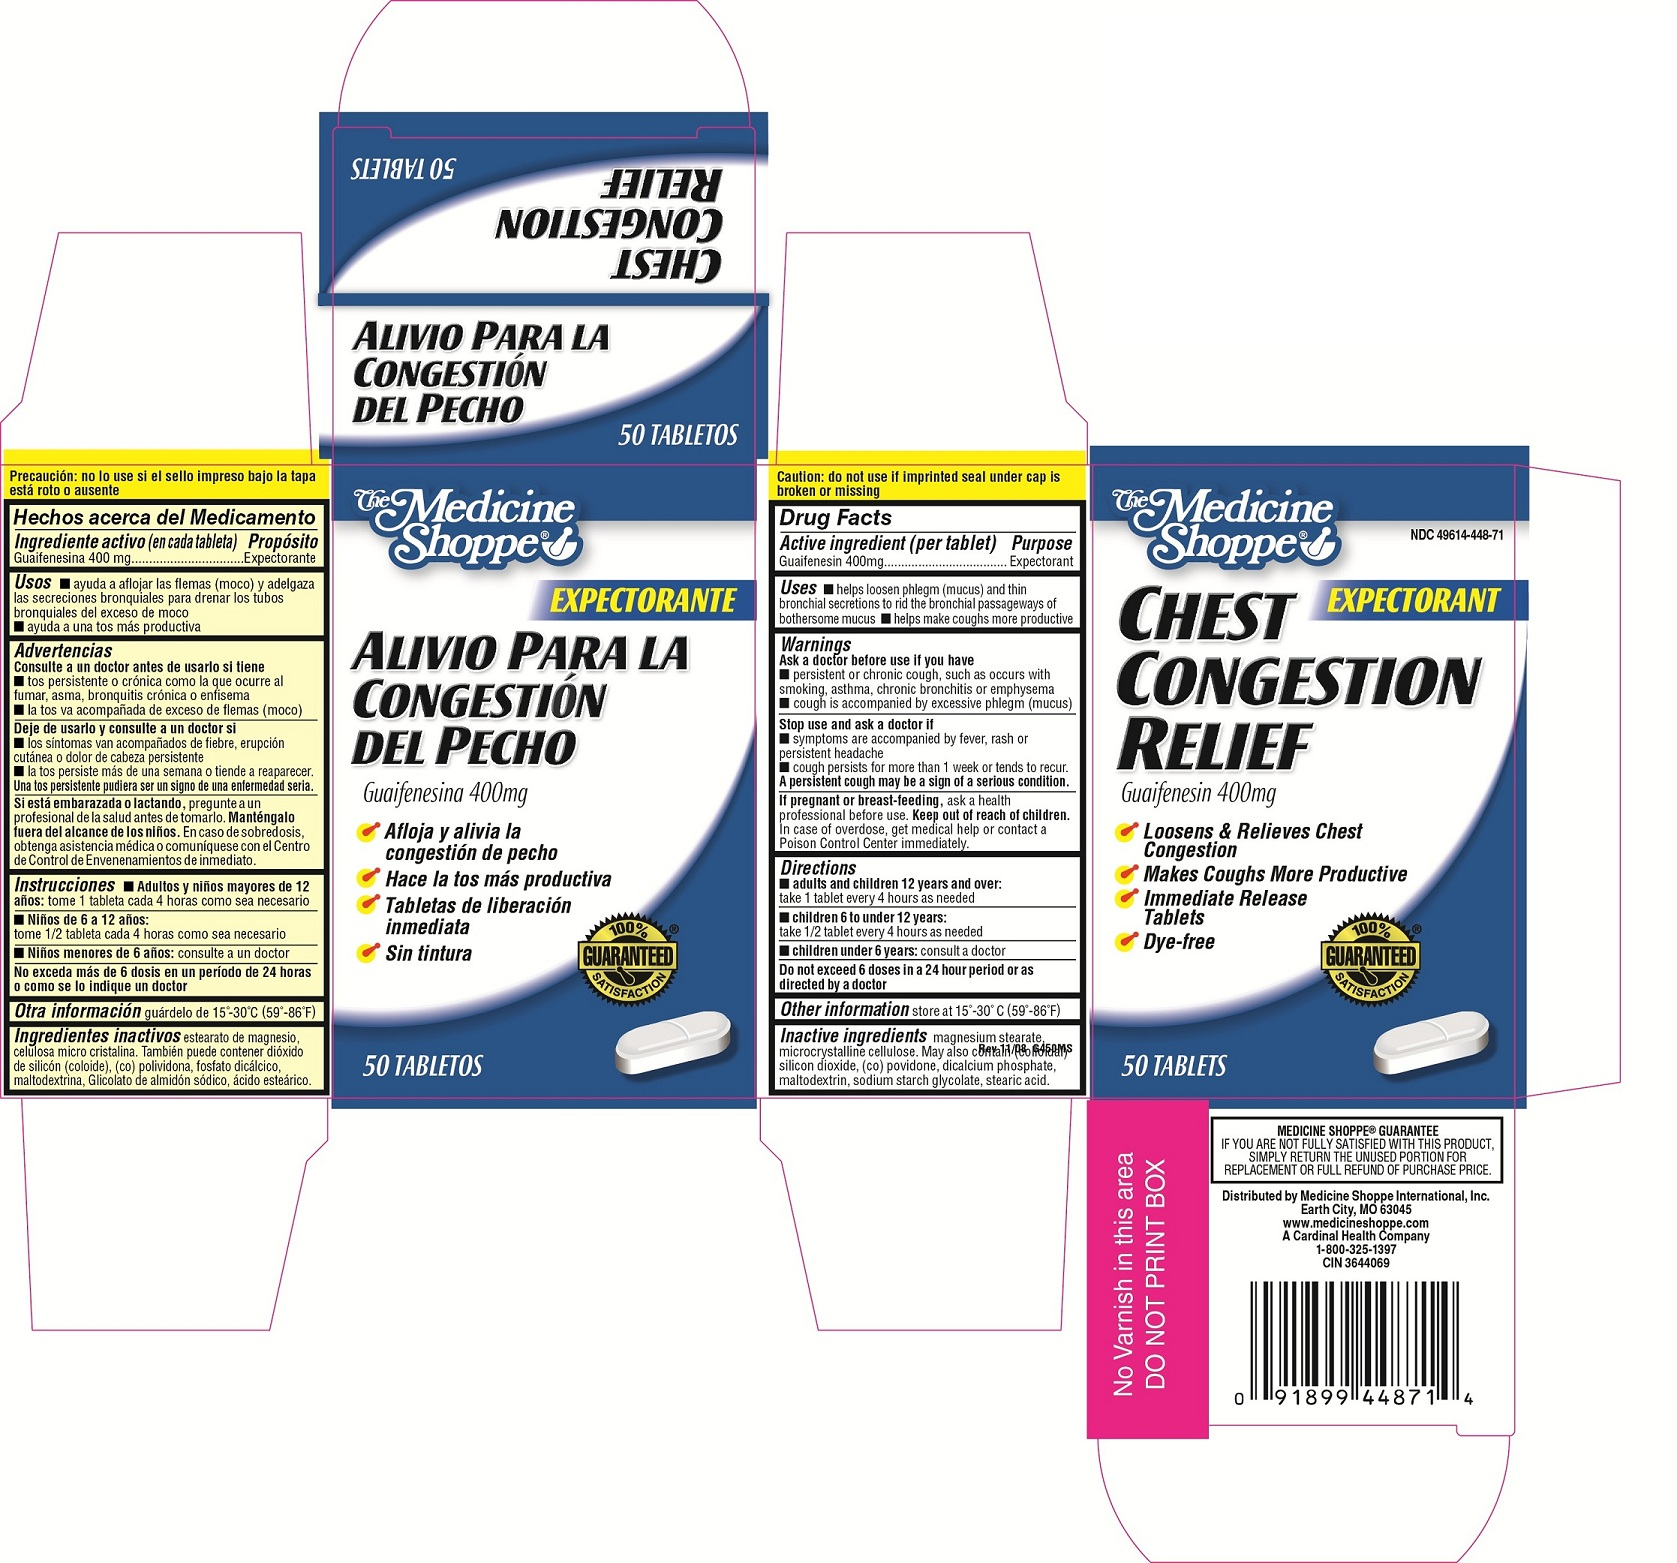 The Medicine Shoppe Chest Congestion Relief (Guaifenesin) Tablet [Medicine Shoppe International Inc]